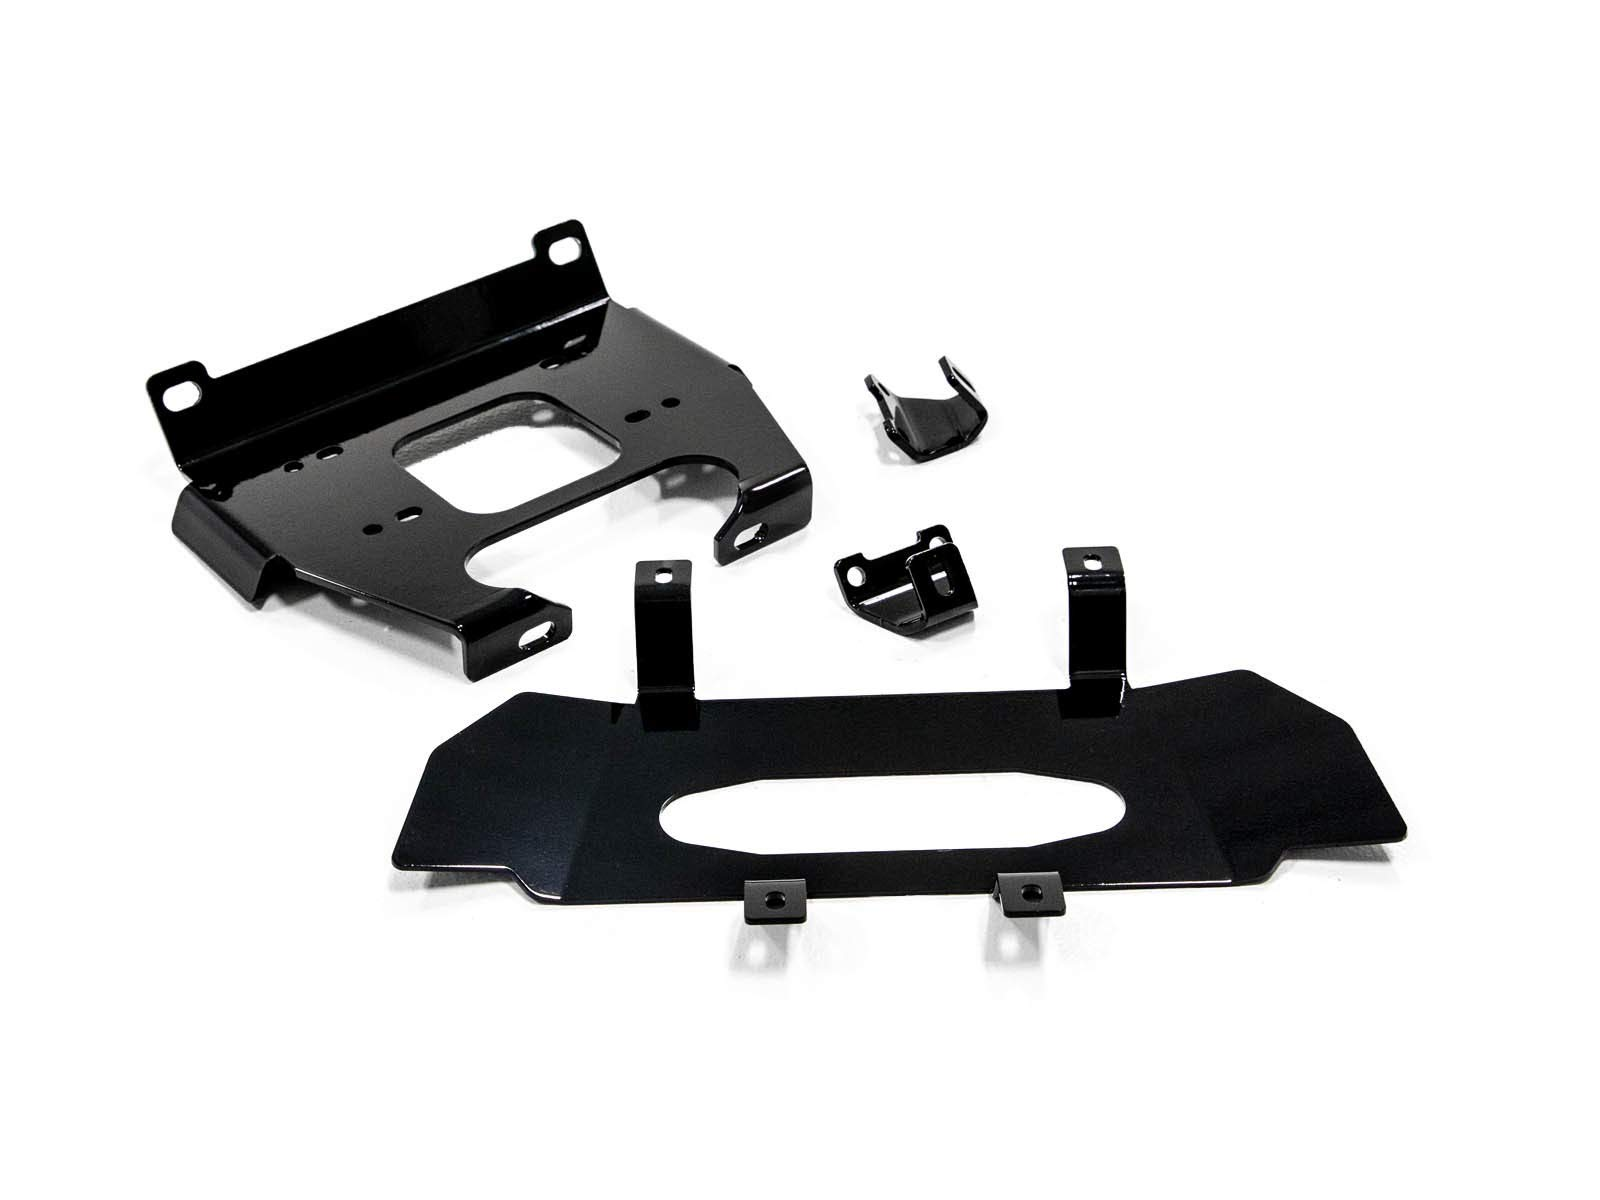 SuperATV Heavy Duty Winch Mounting Plate for Polaris RZR XP Turbo/4 Turbo (2019+) - Dual Mounting Bolt Patterns by SuperATV.com